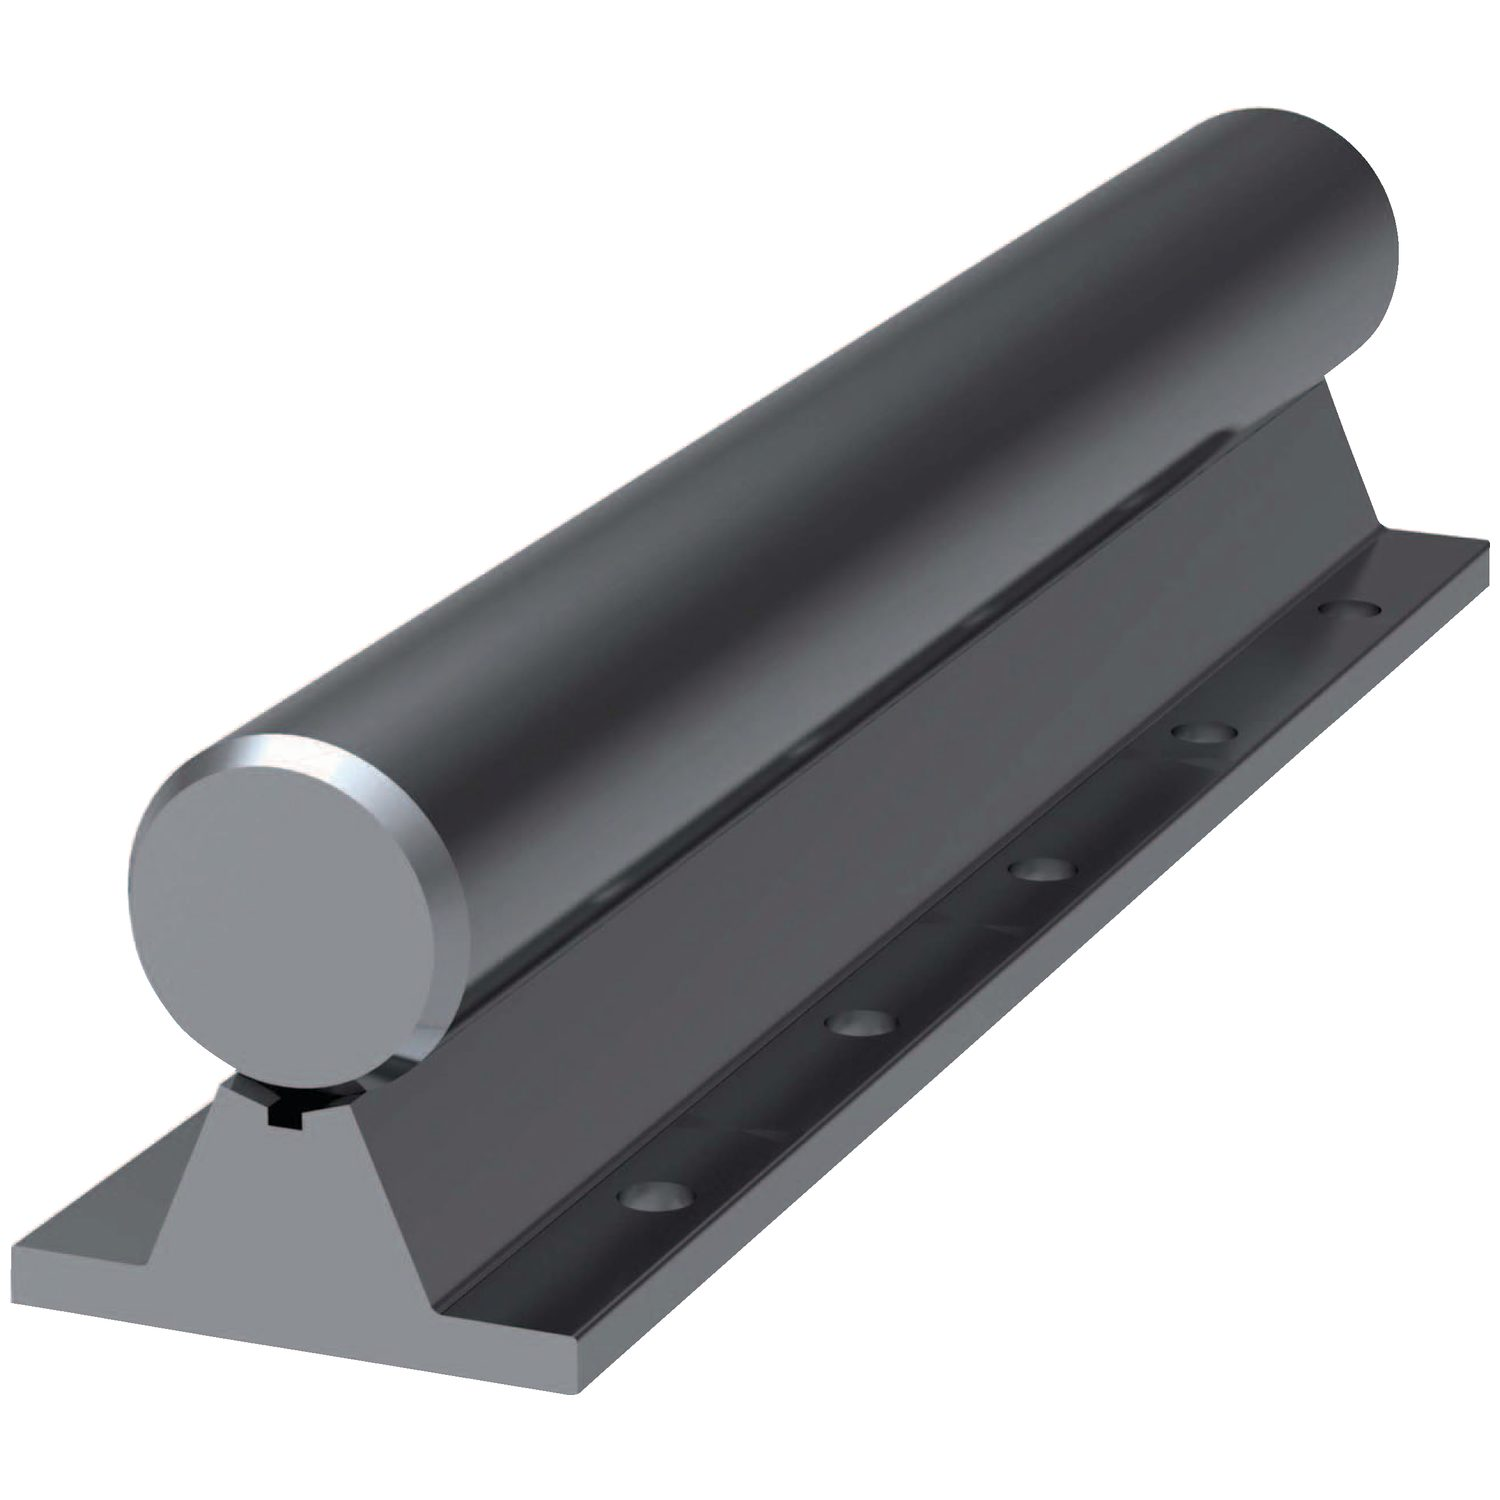 20Ø Shaft Support Rails Shaft support rail for 20mm shaft. Complete with shaft, up to 3 metres long